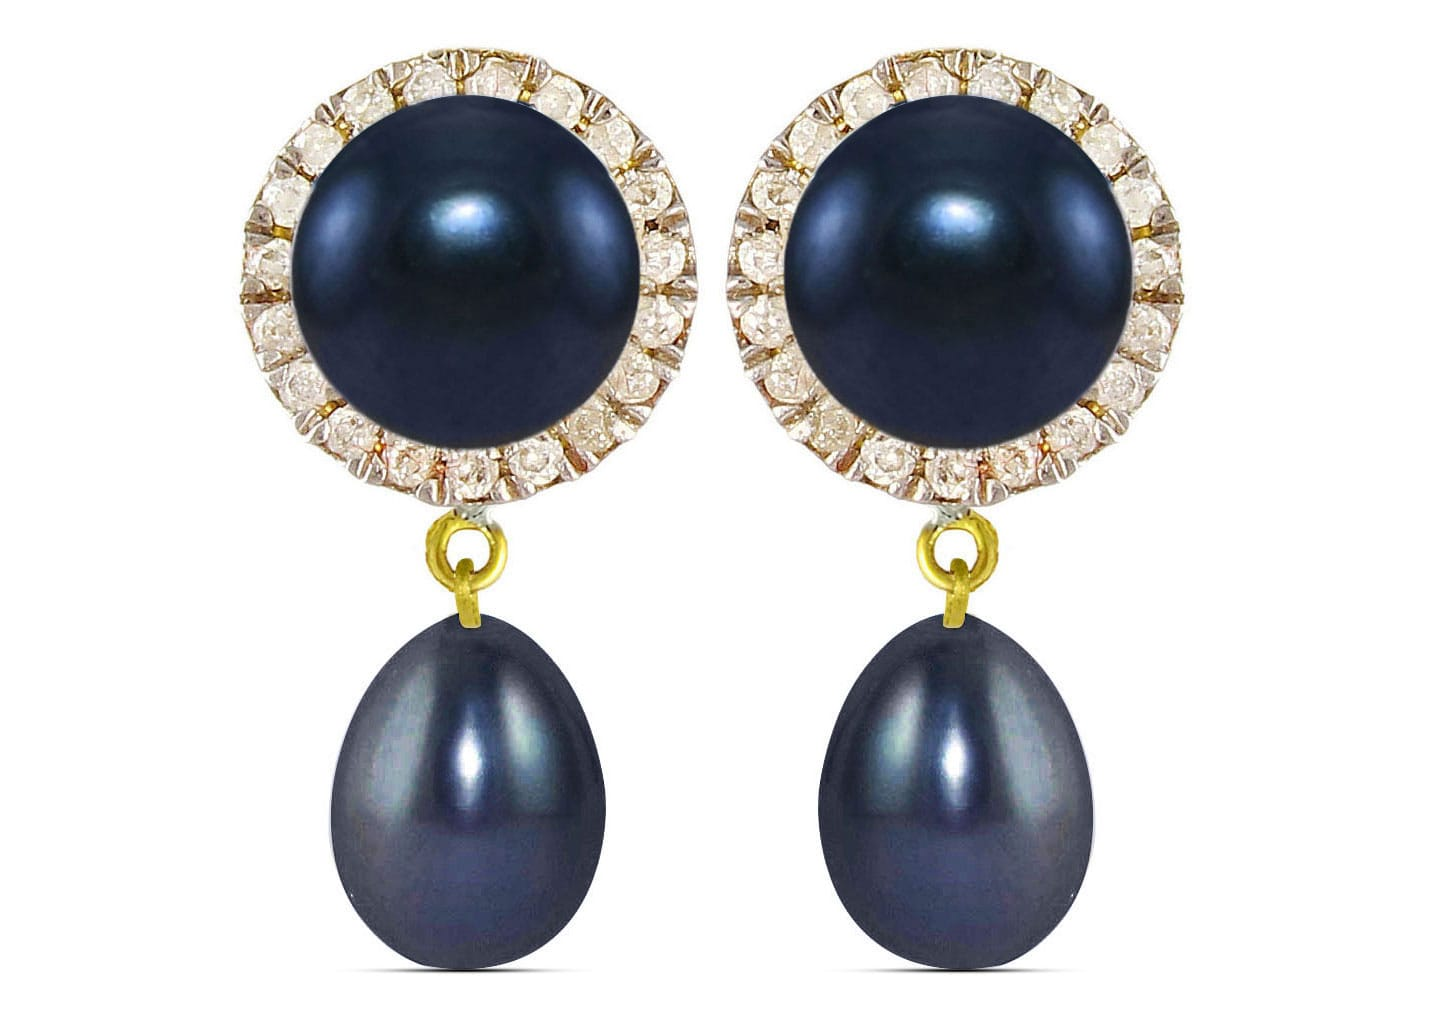 Vera Perla 18K Solid Gold 0.20ct Genuine Diamonds and 6-7 mm Black Pearl Earrings